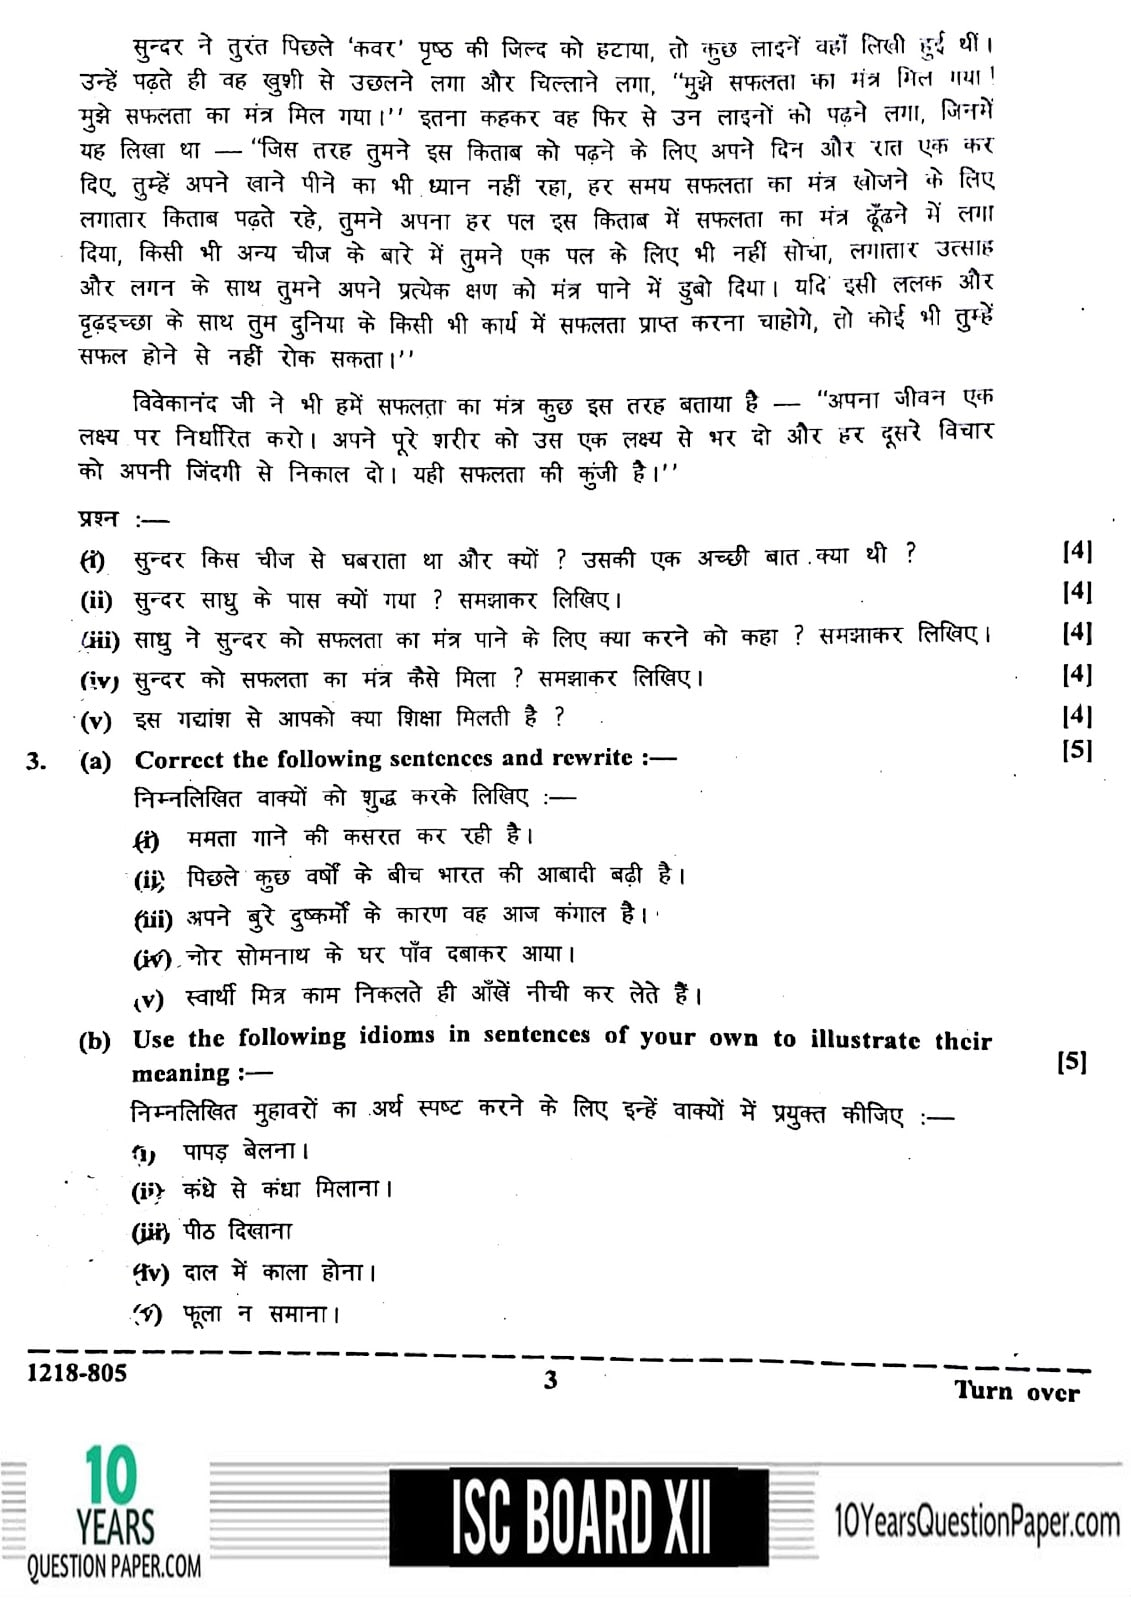 ISC Class 12 Hindi 2018 Question Paper